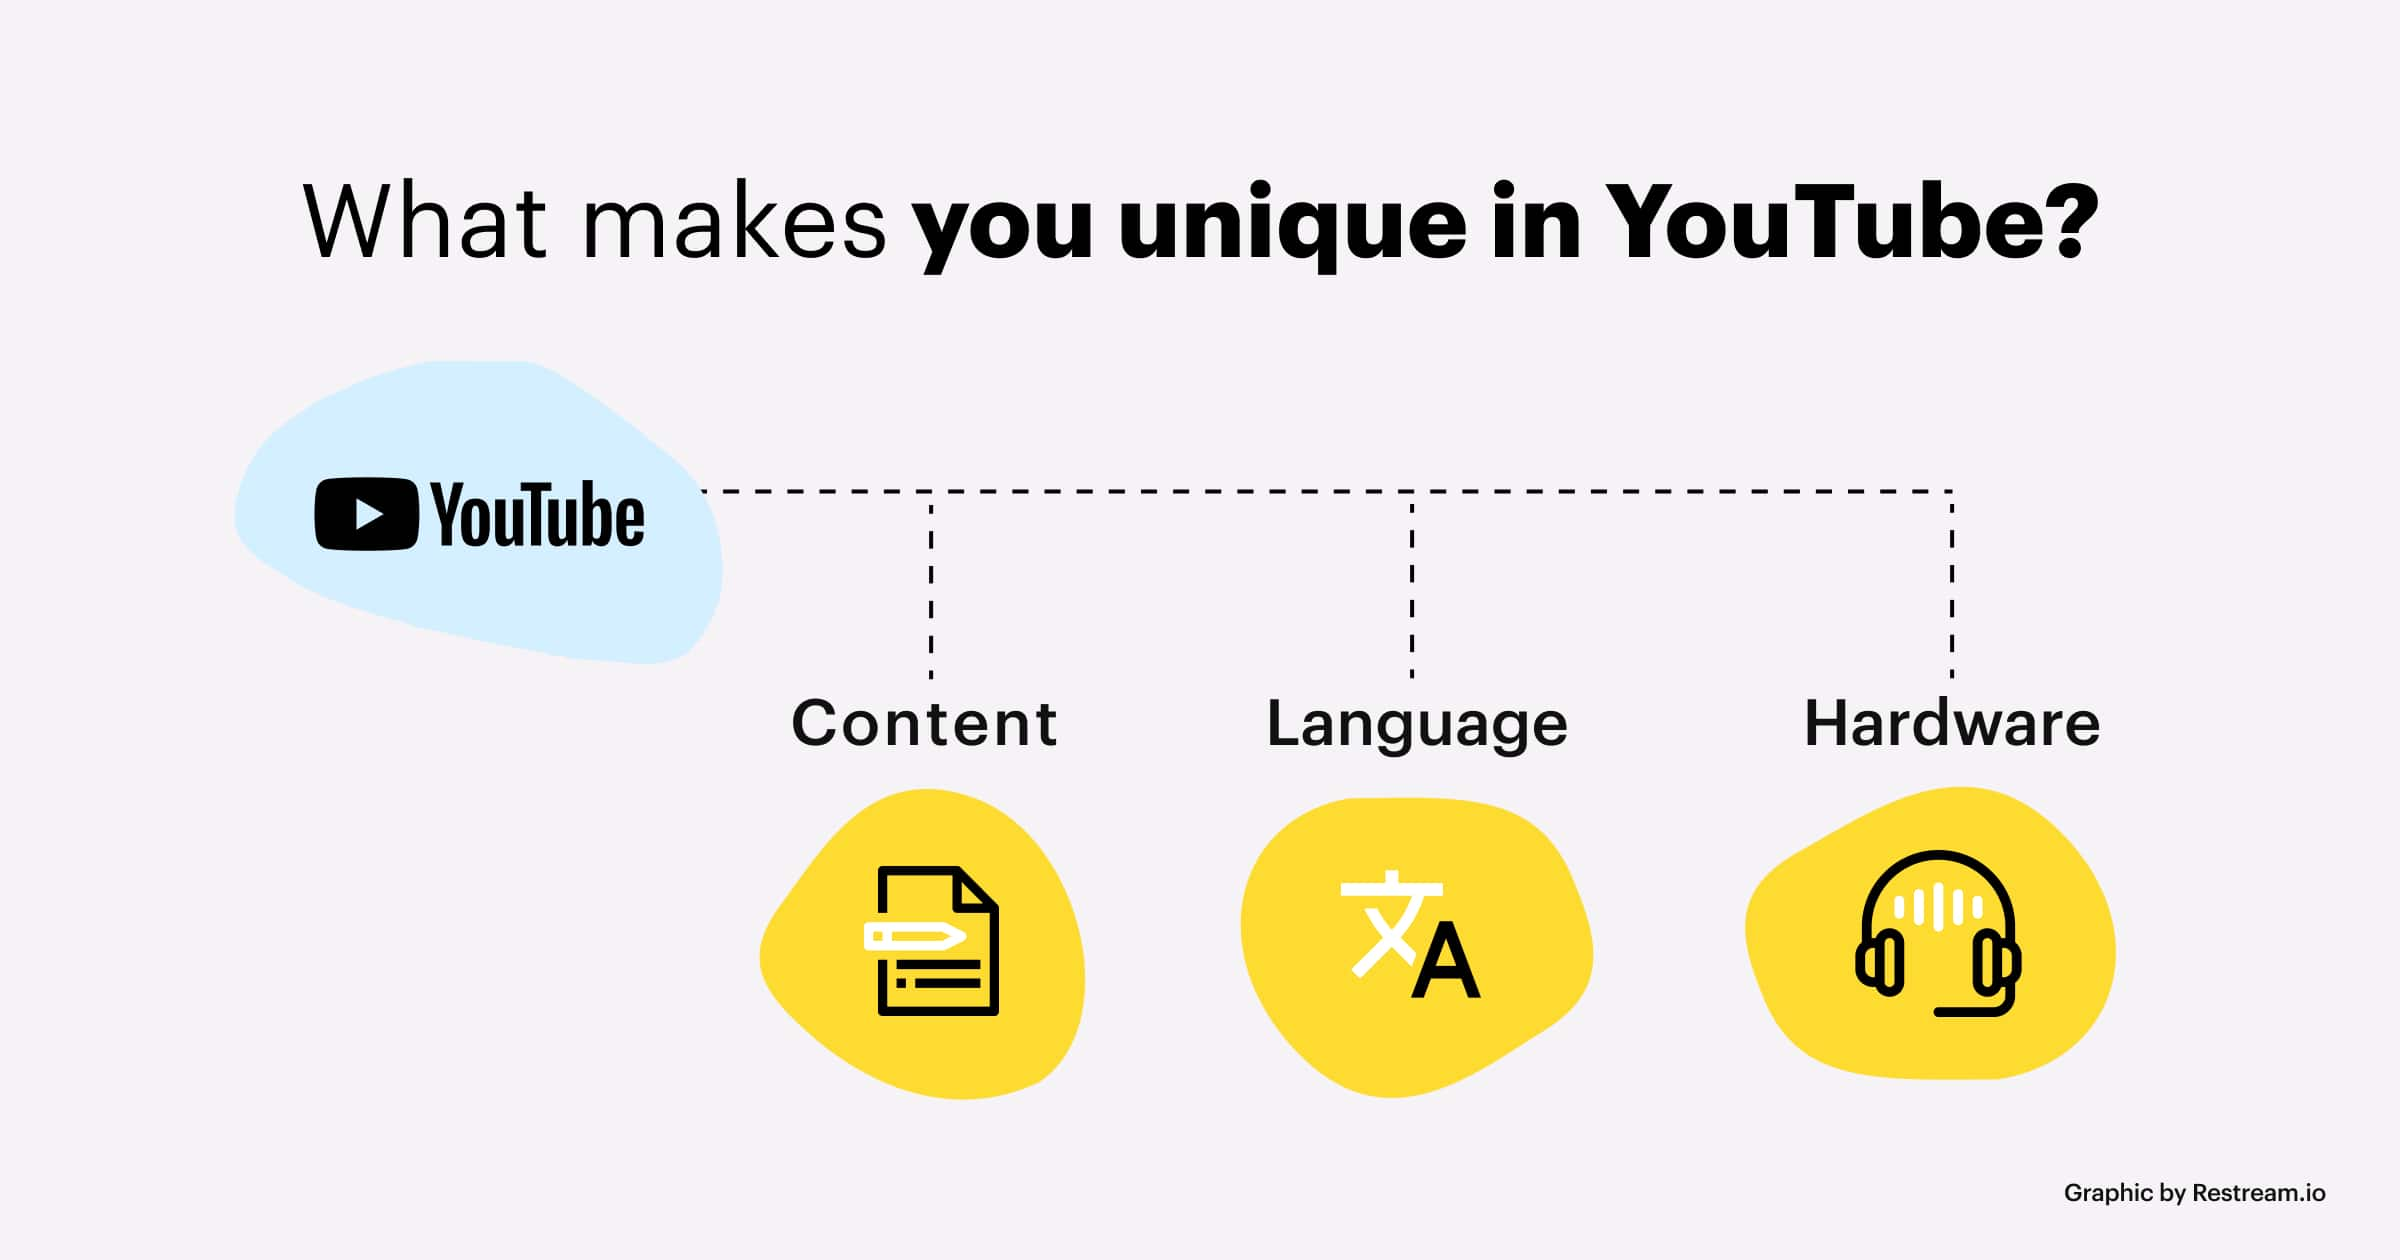 What makes you unique in YouTube?